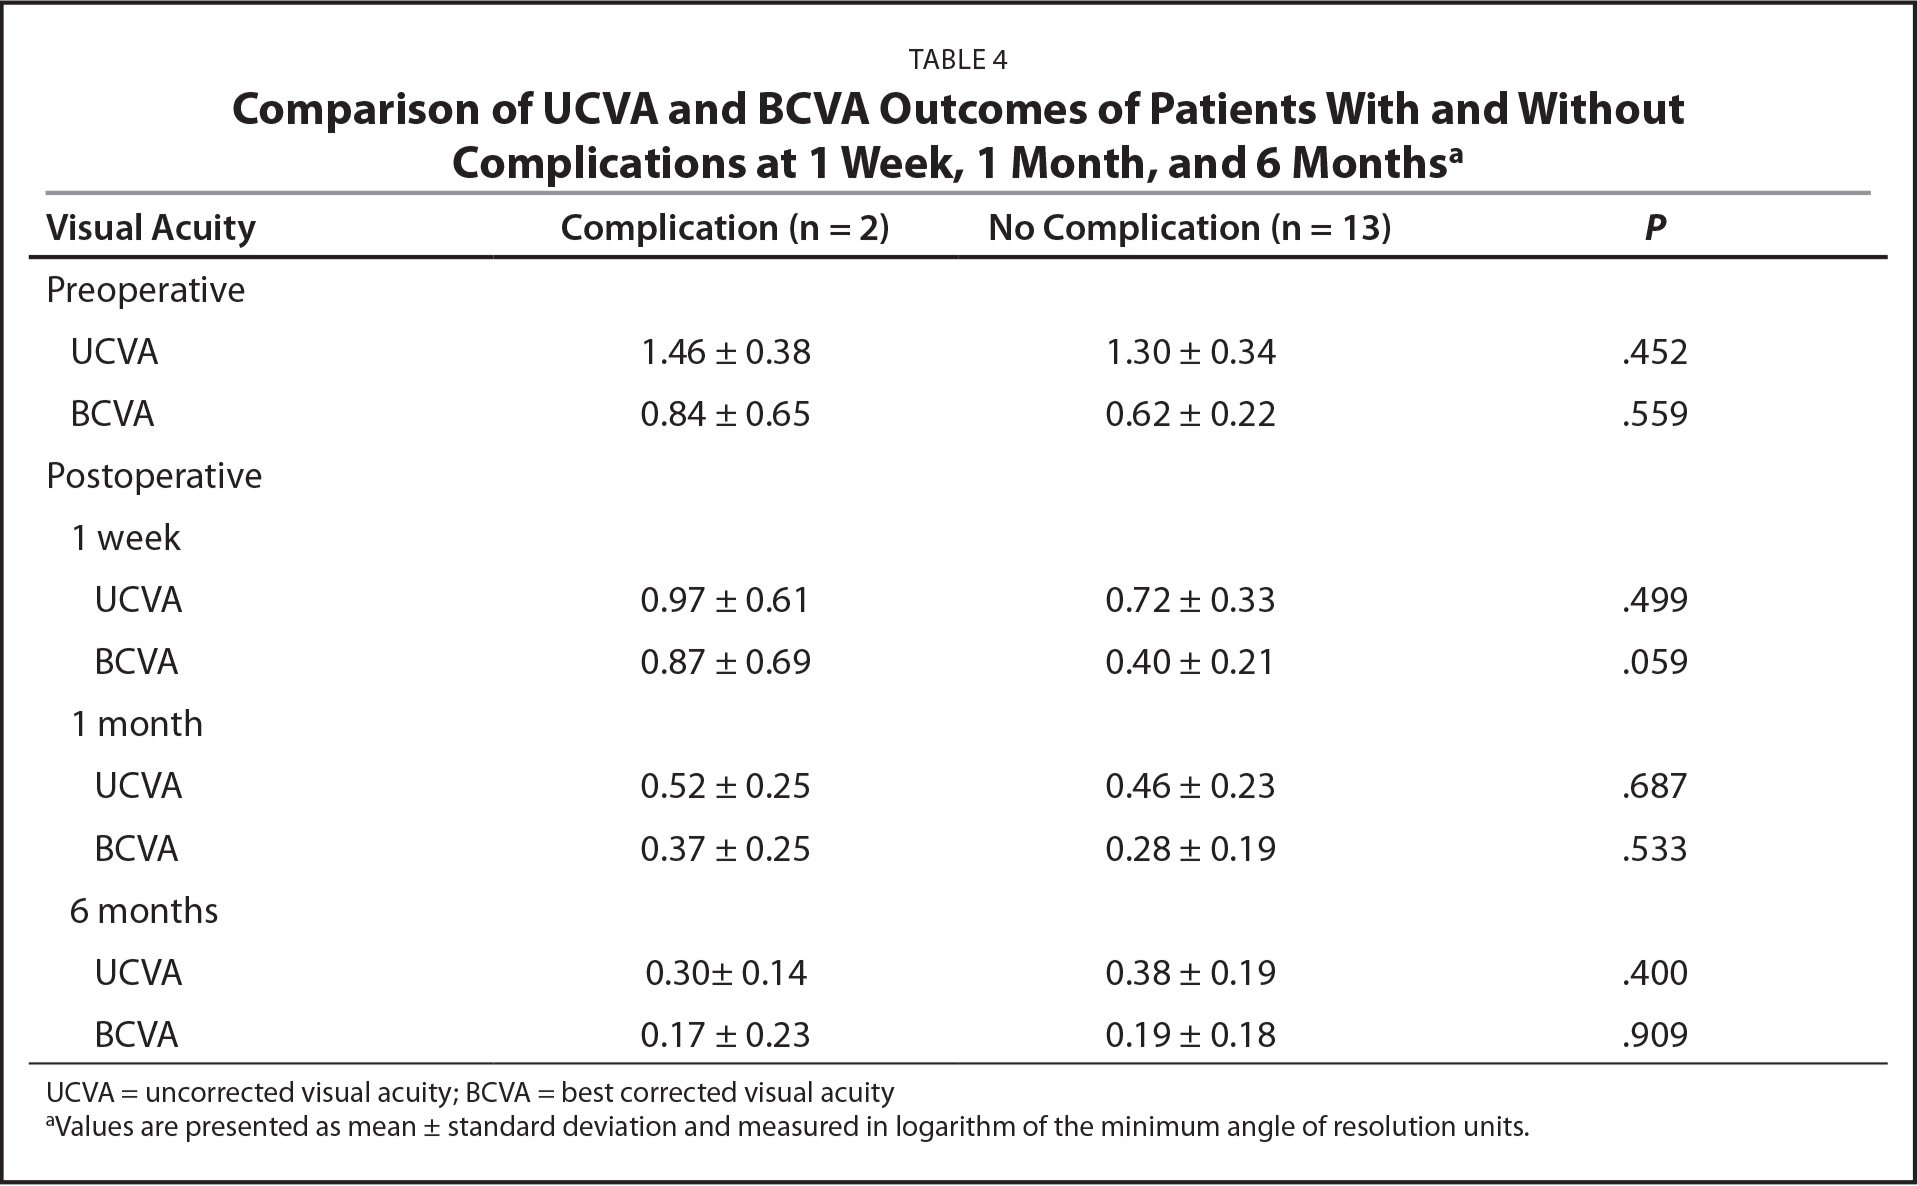 Comparison of UCVA and BCVA Outcomes of Patients With and Without Complications at 1 Week, 1 Month, and 6 Monthsa